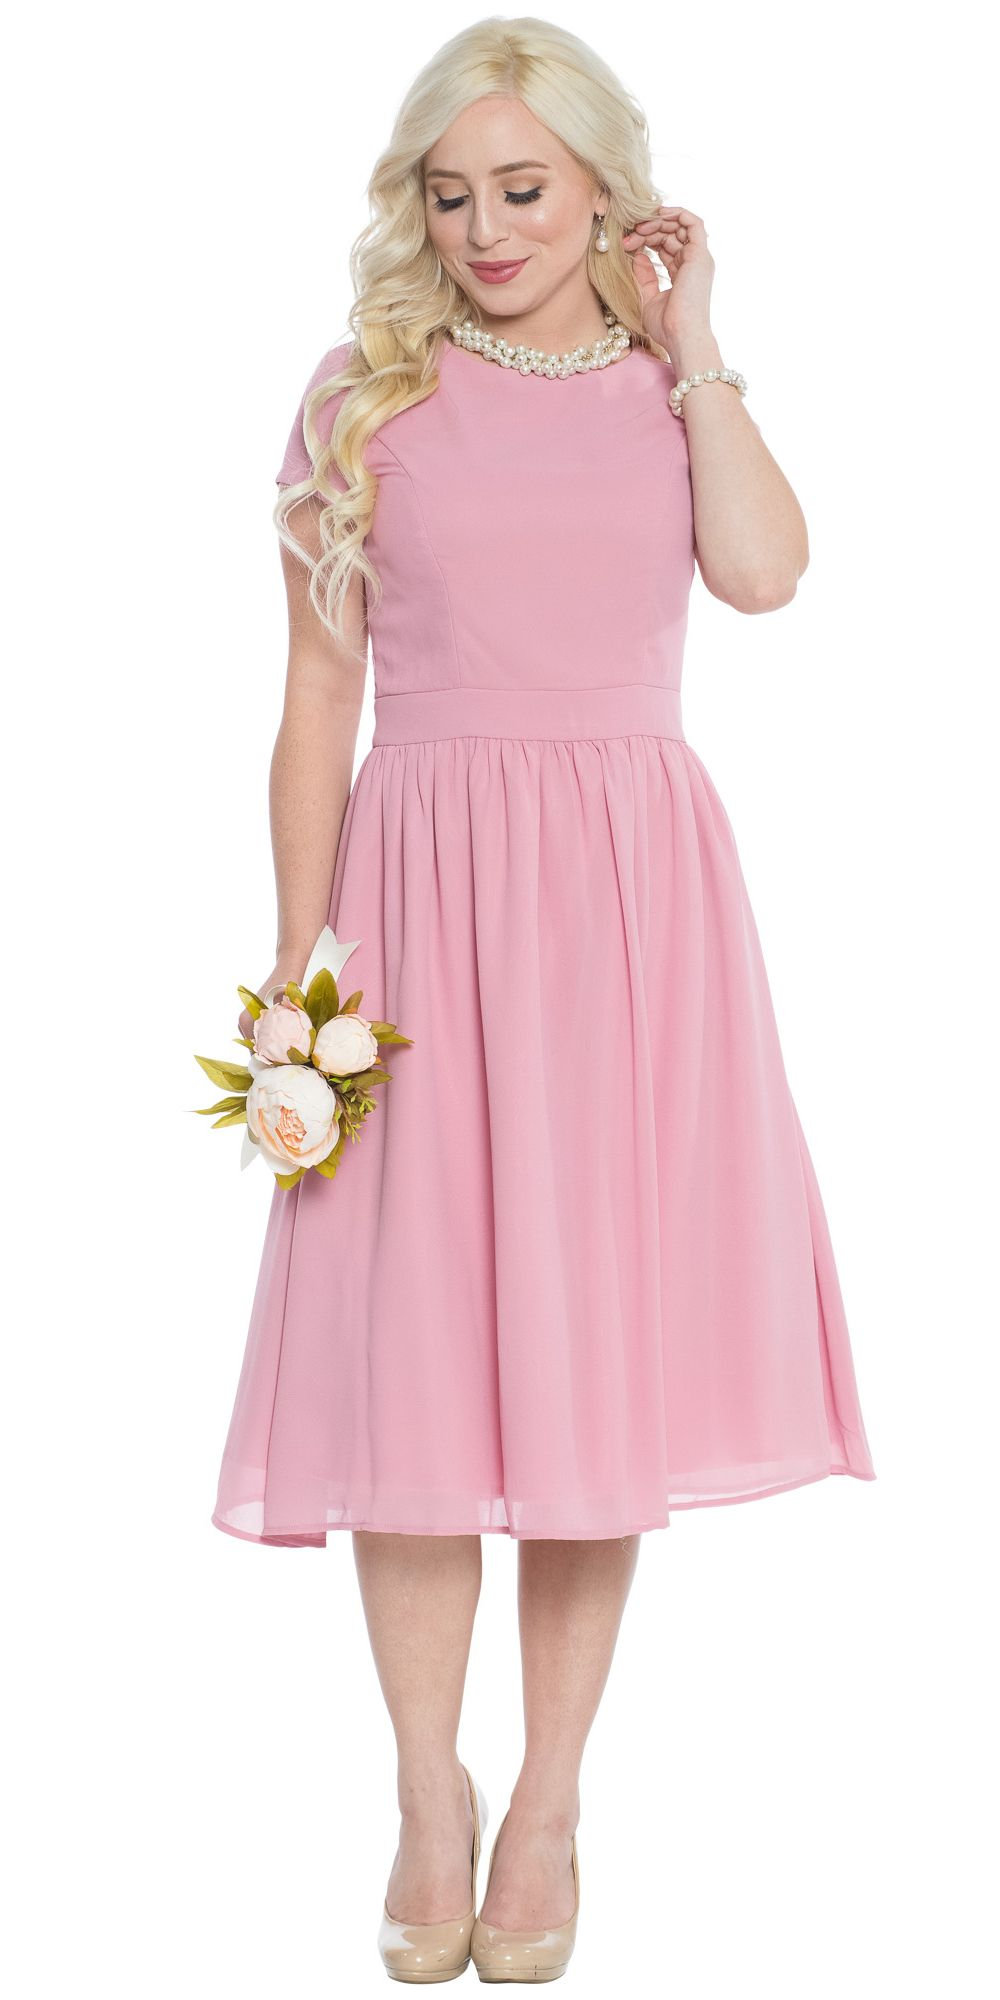 Lucy Modest Bridesmaid or Semi-Formal Homecoming Dress in Blush Pink ...